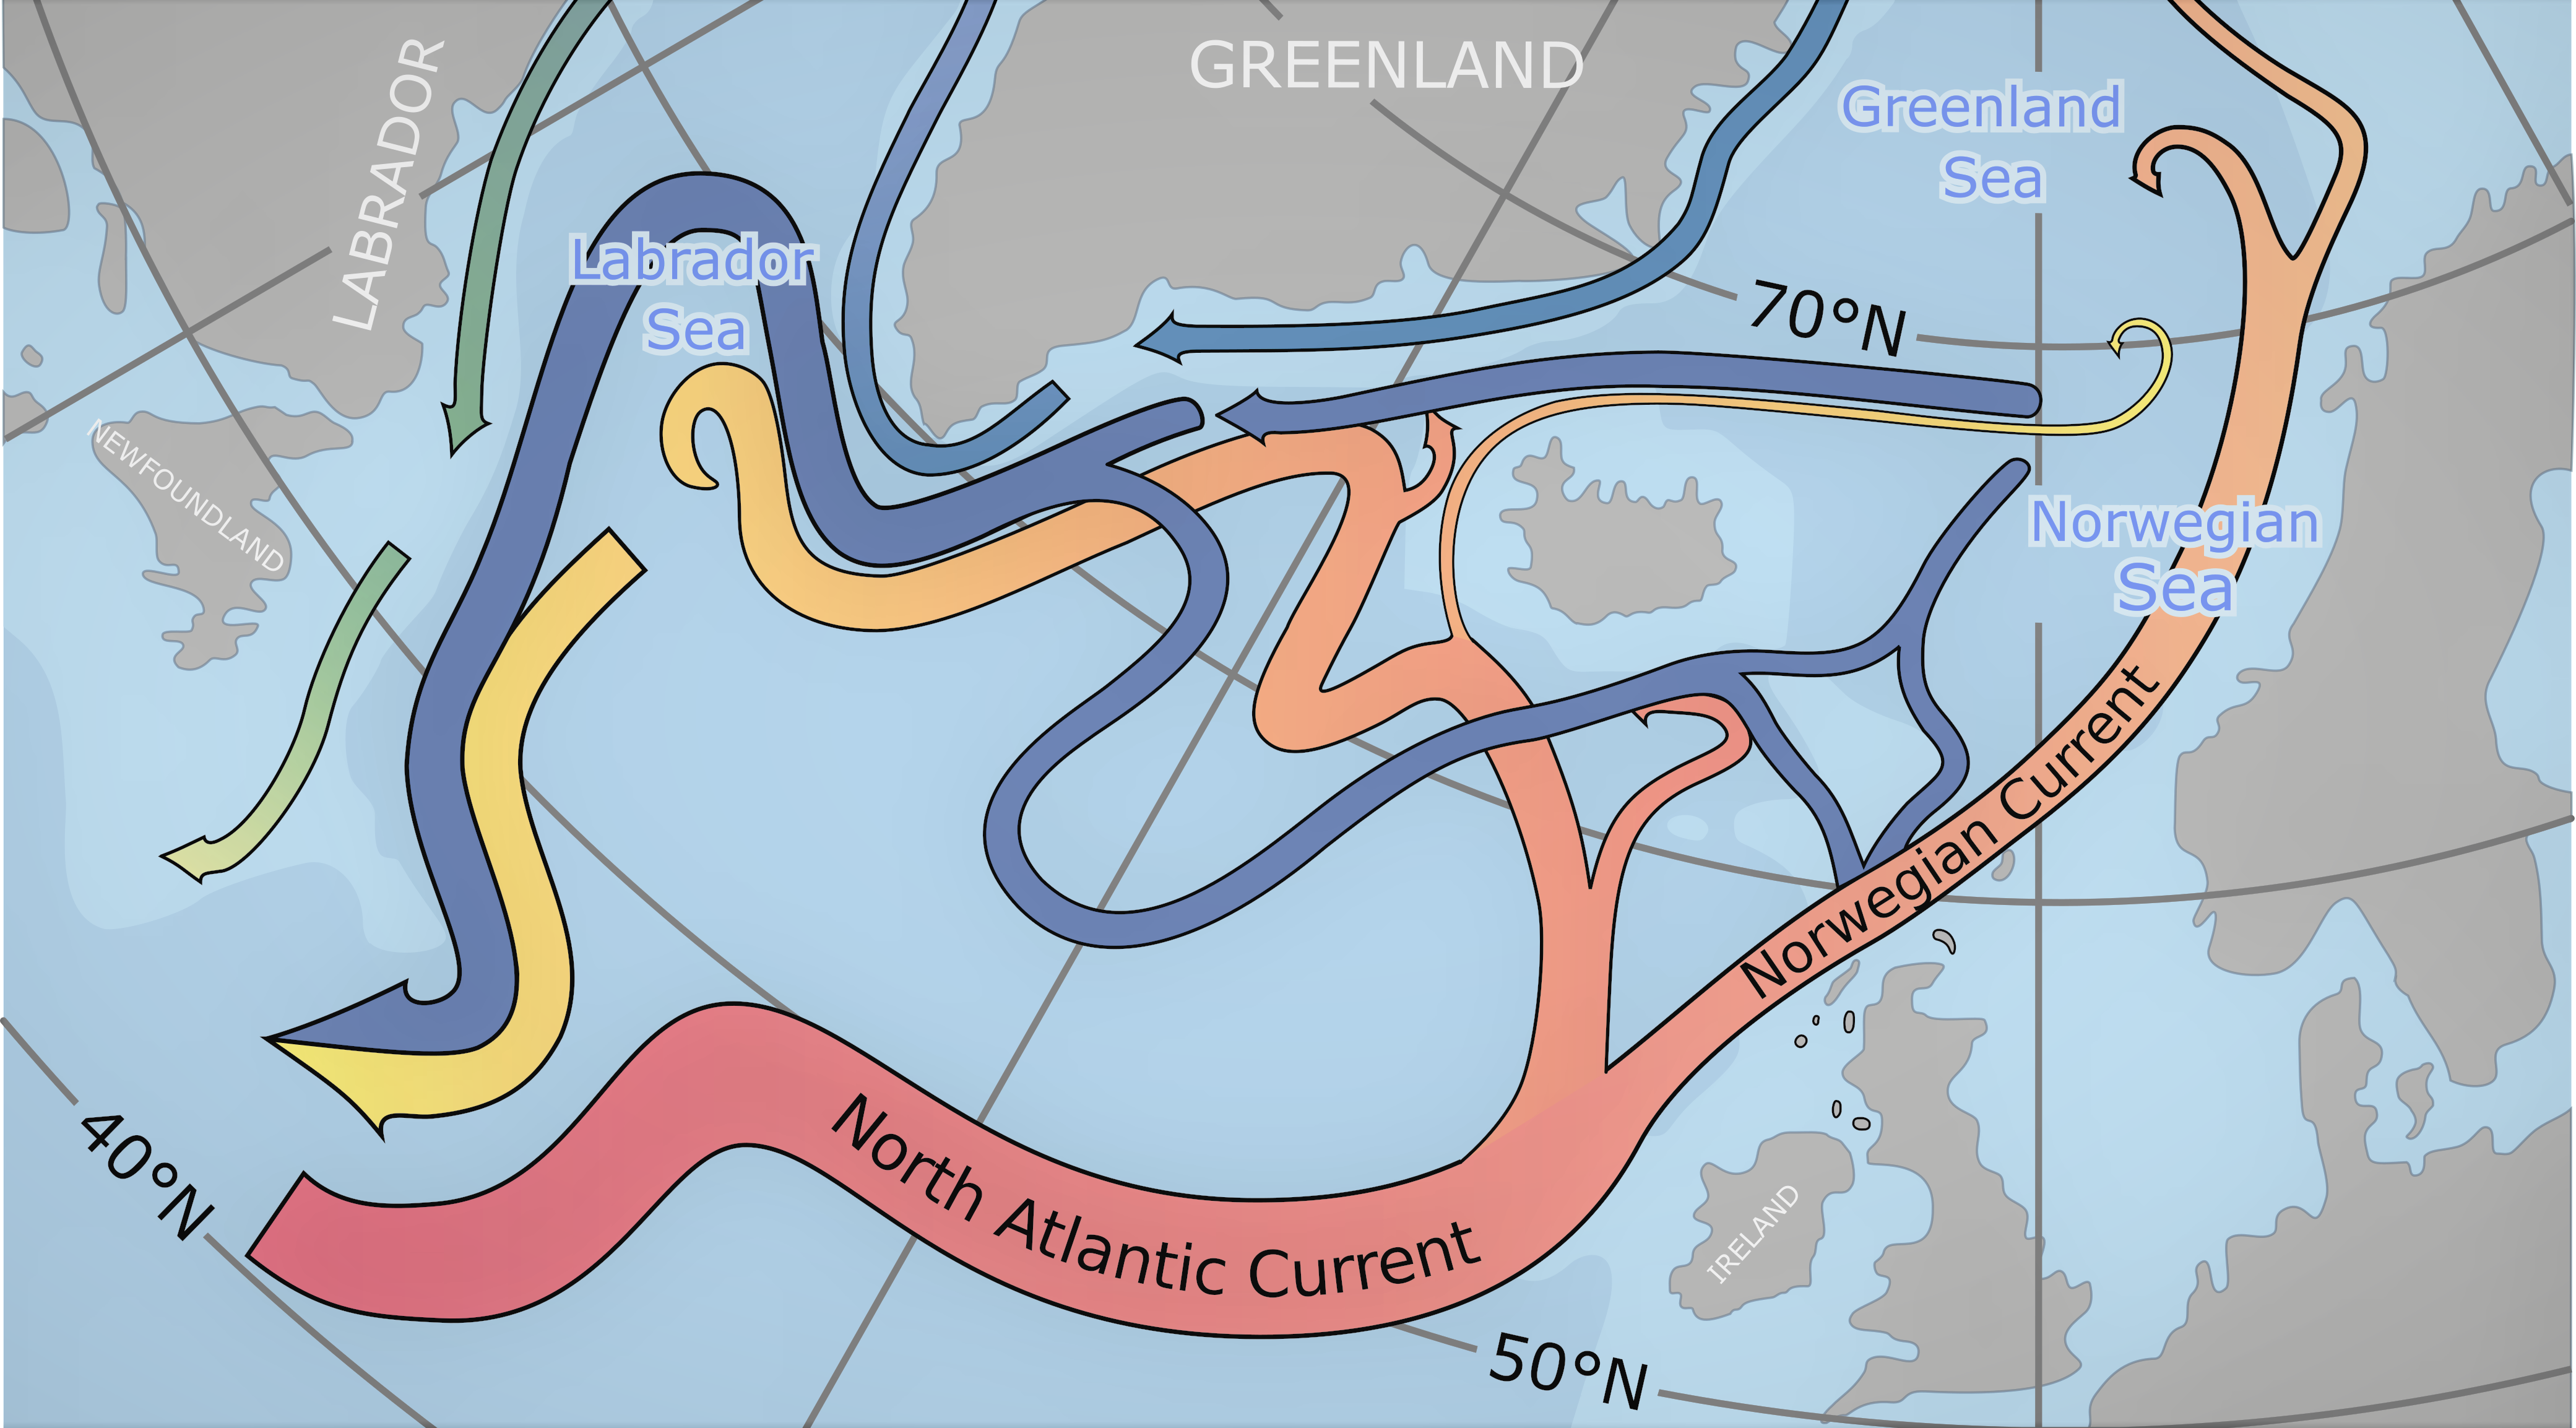 Atlantic currents system, by NASA